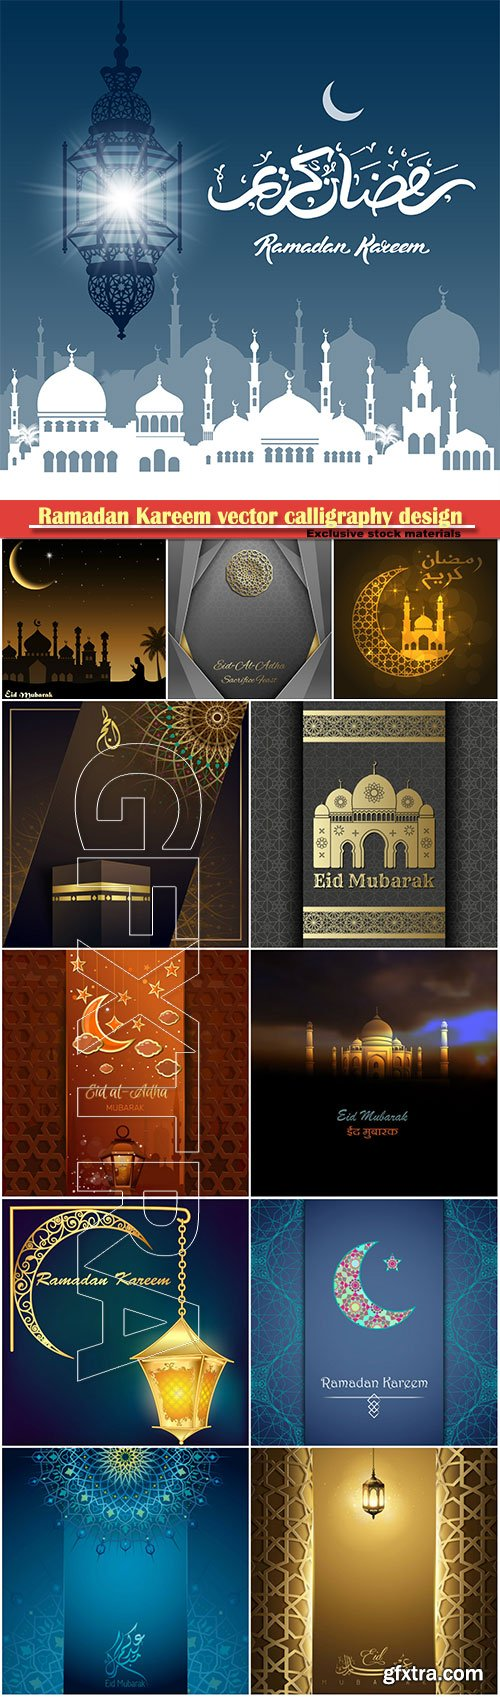 Ramadan Kareem vector calligraphy design with decorative floral pattern, mosque silhouette, crescent and glittering islamic background # 23